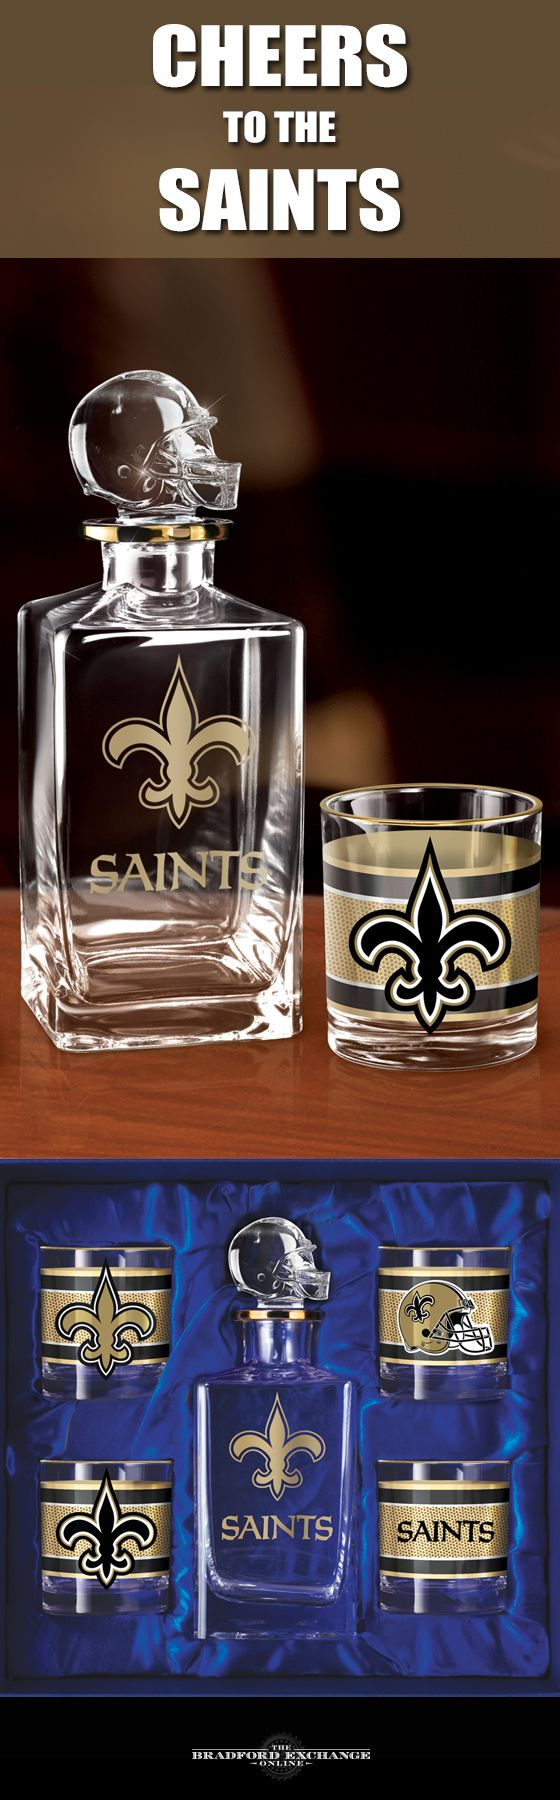 Raise a toast to your New Orleans Saints with a handsome 5-piece decanter set. This officially-licensed NFL barware set includes a crystal-clear decanter with a team helmet stopper, 4 team icon glasses rimmed in gleaming 12K gold and a satin-lined gift box